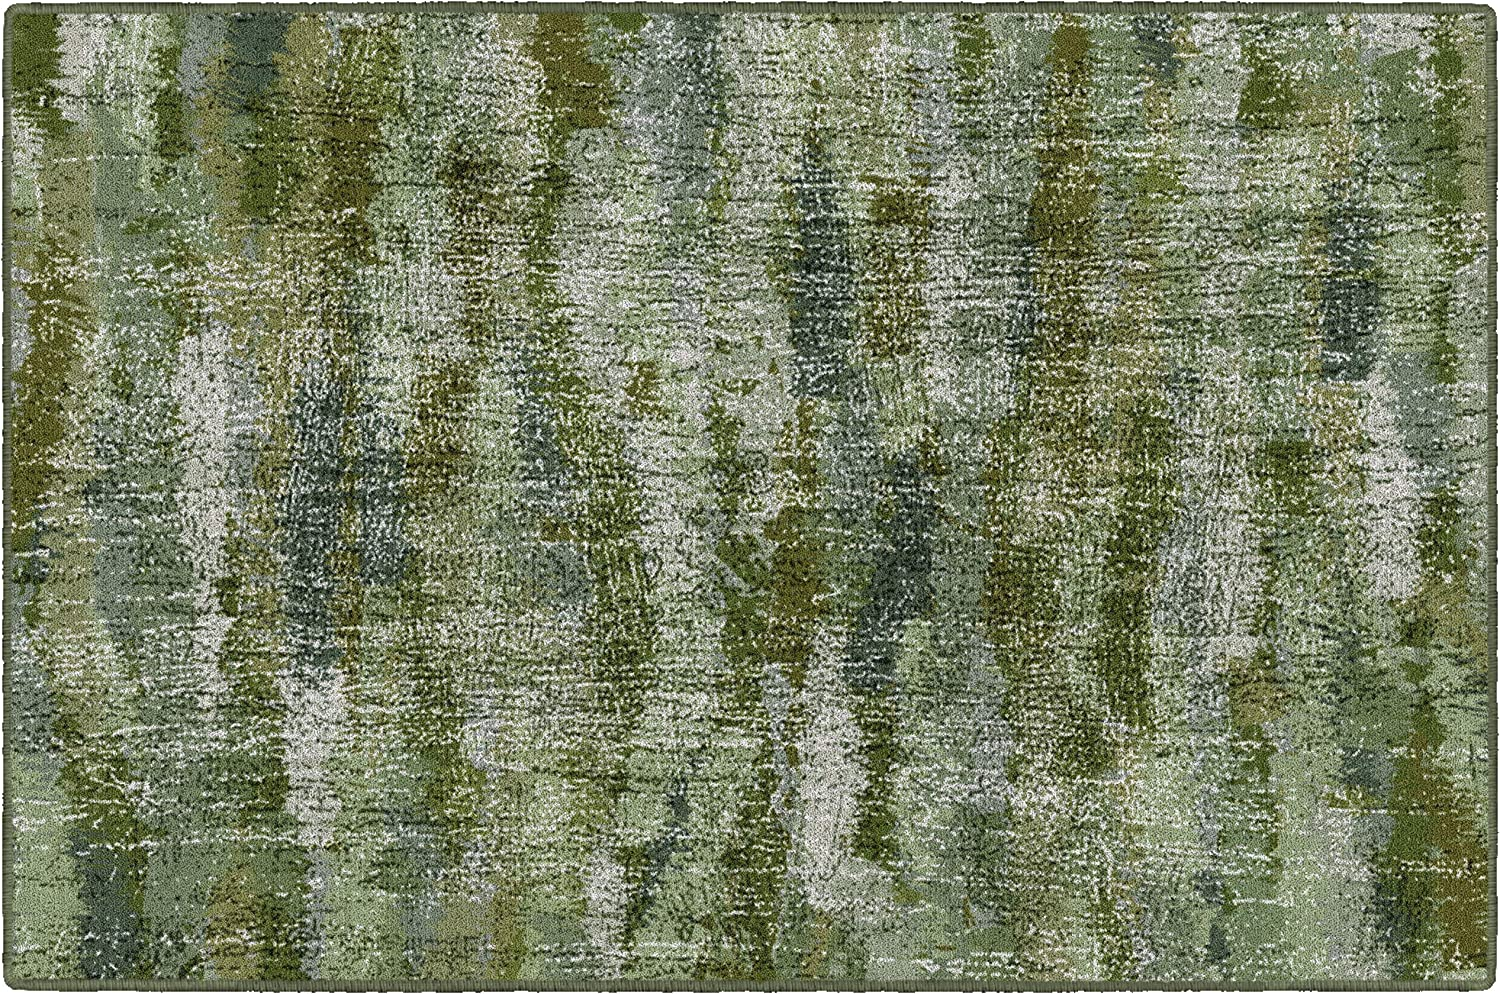 "Brumlow Mills Rustic Abstract Bohemian Home Indoor Area Rug with Contemporary Colorful Green Print Pattern for Living Room Decor, Dining Room, Kitchen Rug, or Bedroom, 3'4"" x 5', Green"